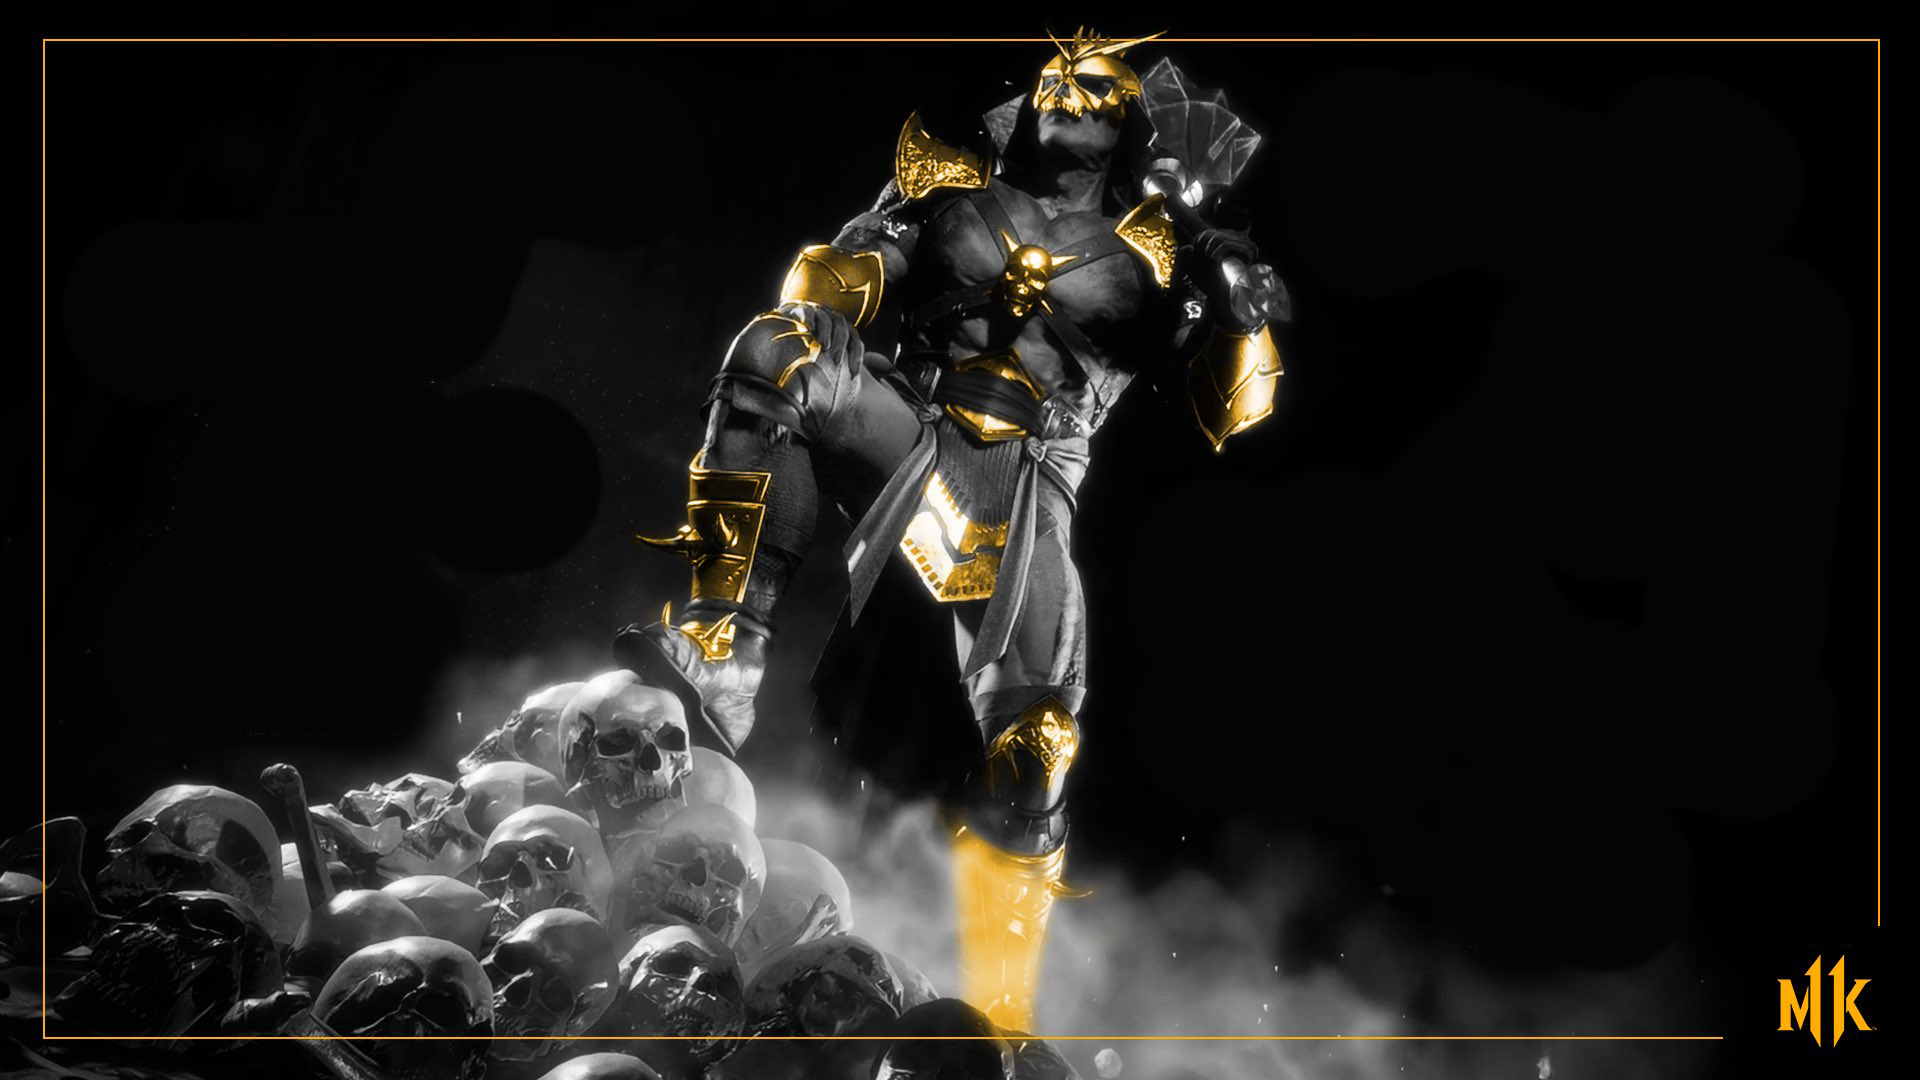 Mortal Kombat 11 background - Gold Shao Khan